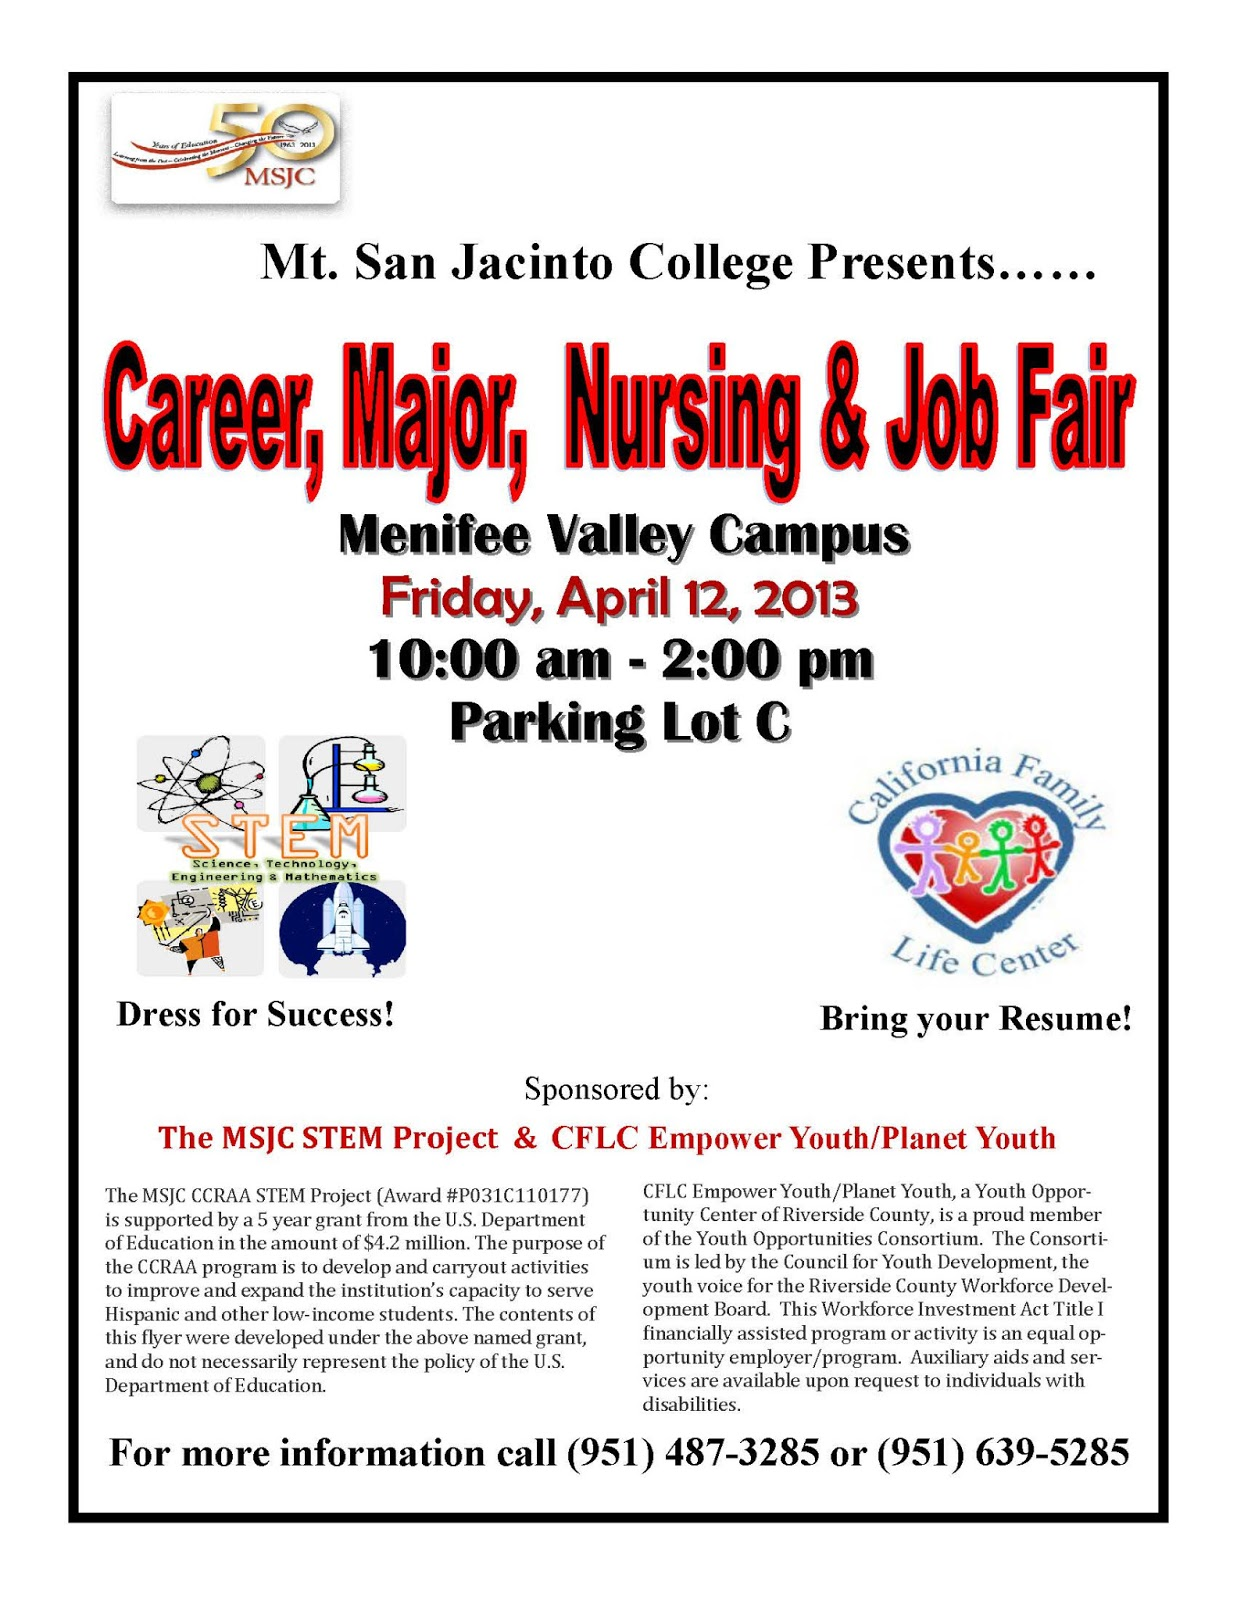 professional nursing organization flyer s The benefits of professional association membership by the career experts at robert half given the number of responsibilities that you juggle on a daily basis, joining a professional organization may not be one of your top priorities.